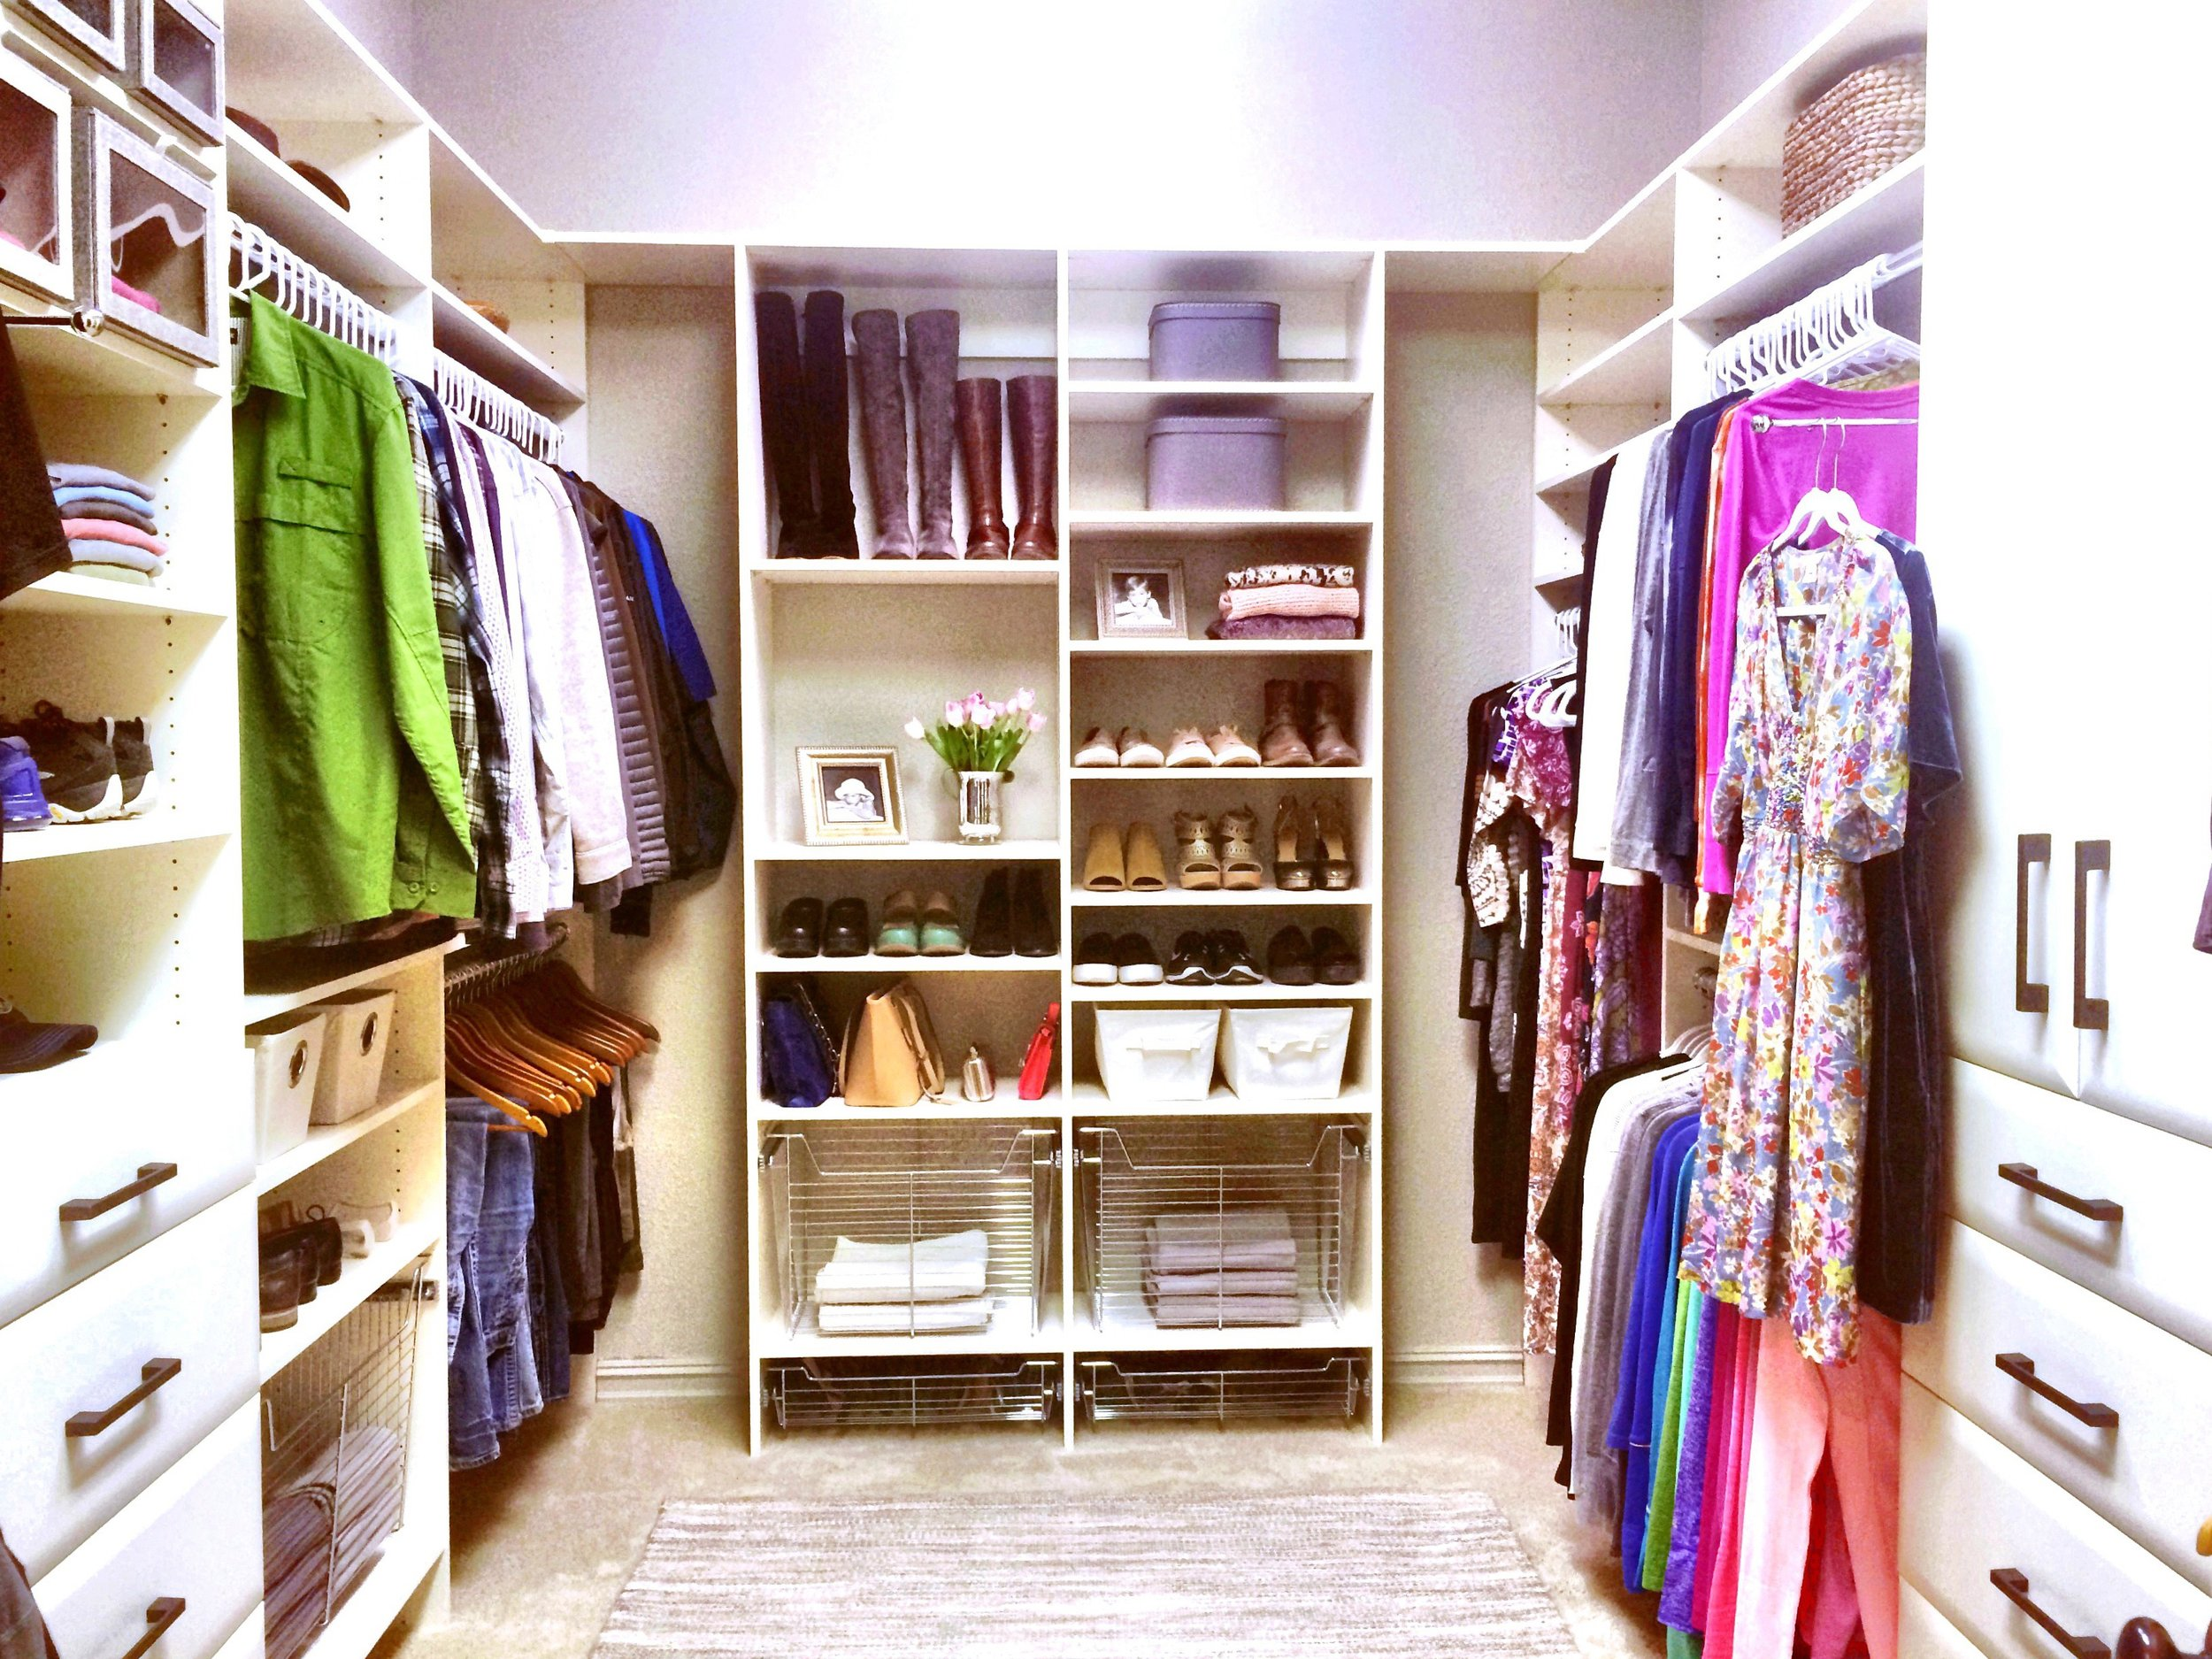 Closets of Tulsa designed this custom closet to meet the storage needs and style requirements of two South Tulsa clients.  Call now  for your FREE consultation and 3-D closet design:  918.609.0214